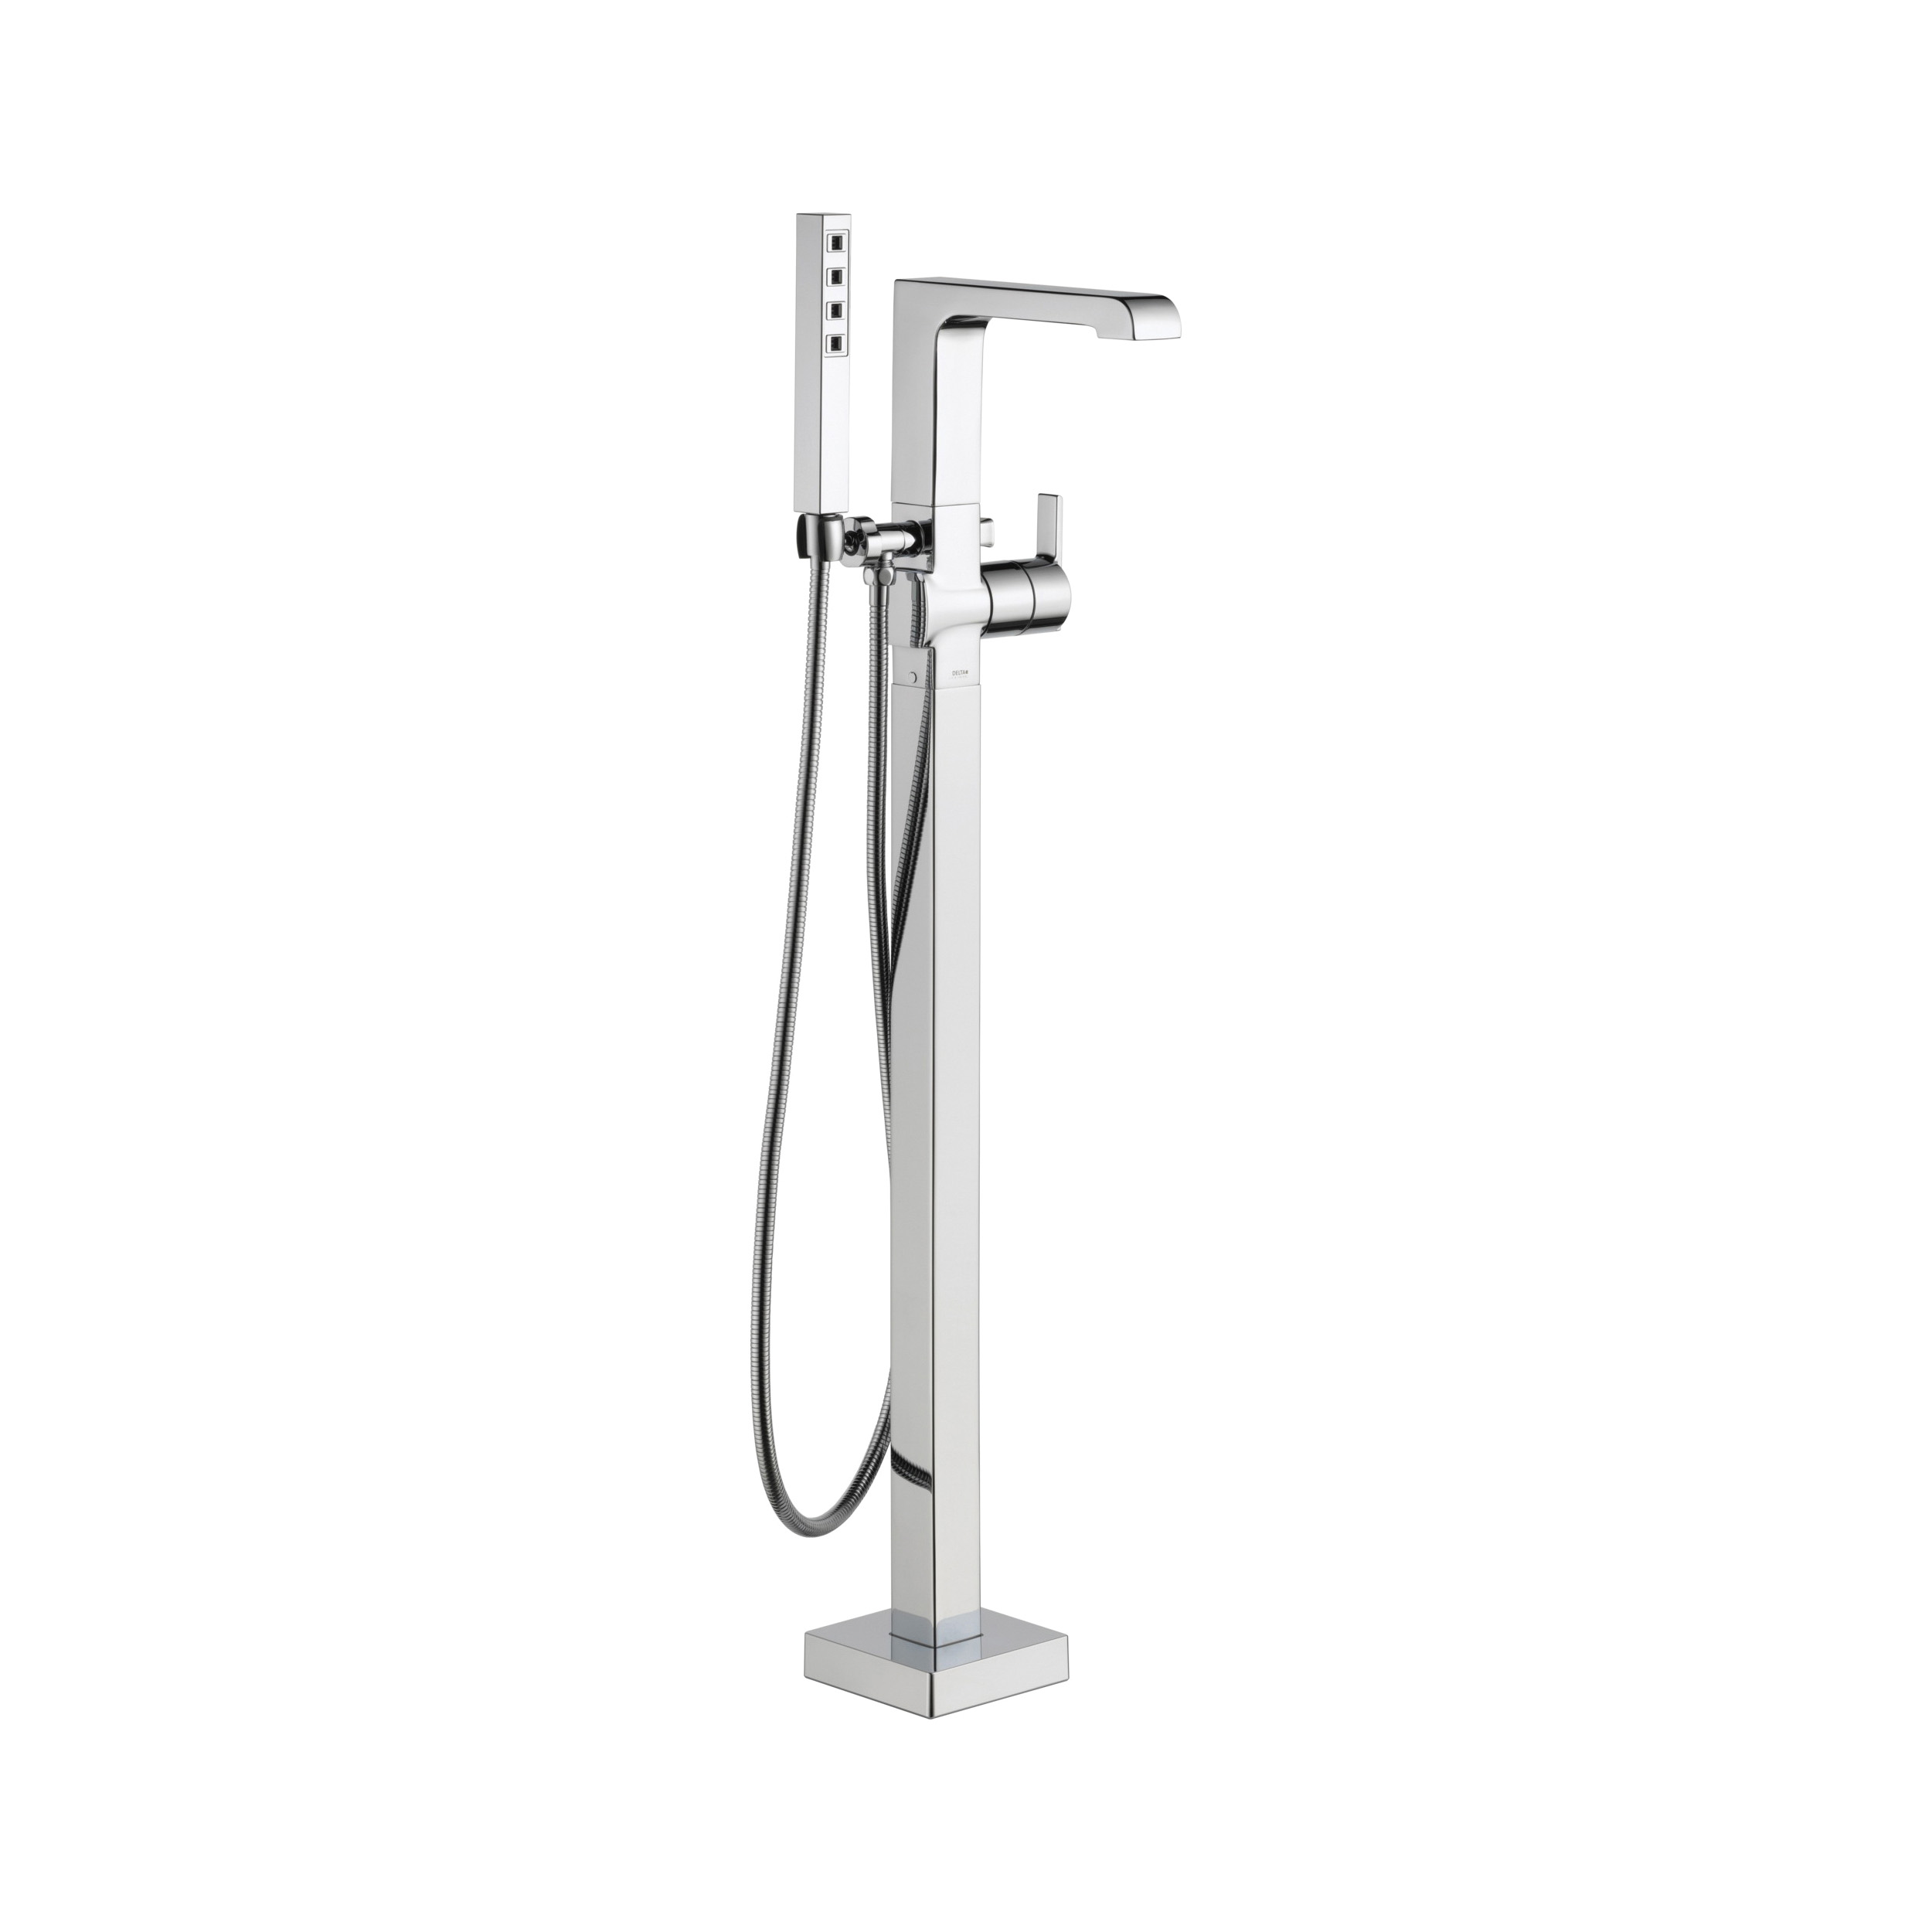 DELTA® T4767-FL Tub Filler, Ara®, 2 gpm Flow Rate, Polished Chrome, 1 Handles, Domestic, Commercial